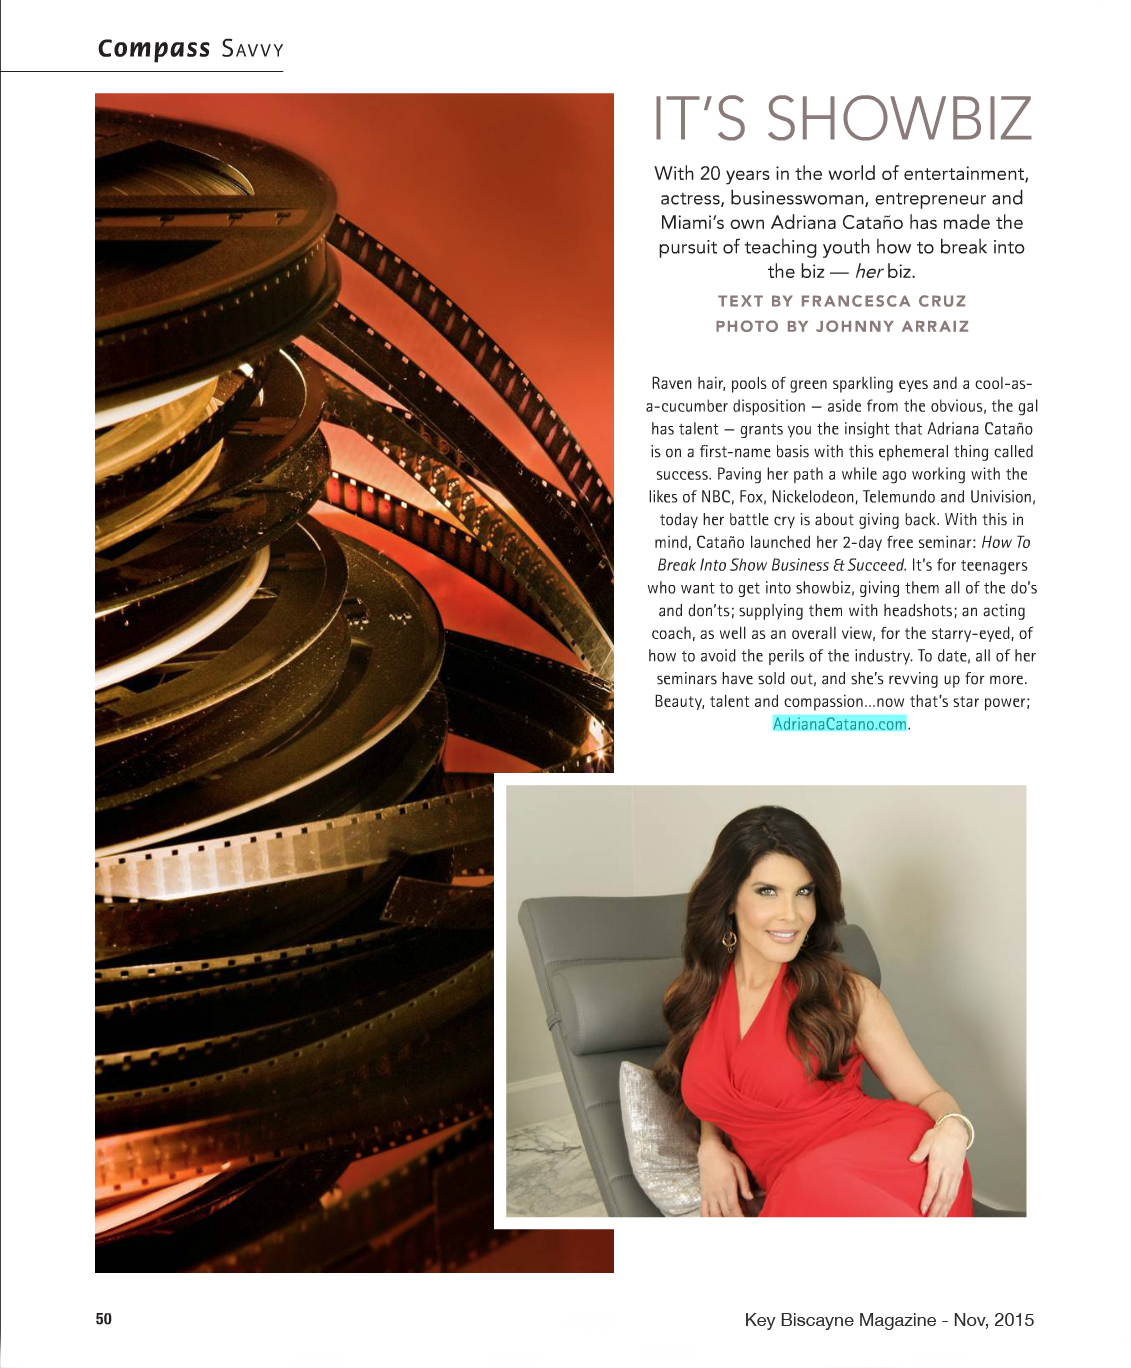 Key Biscayne Magazine - Nov 2015